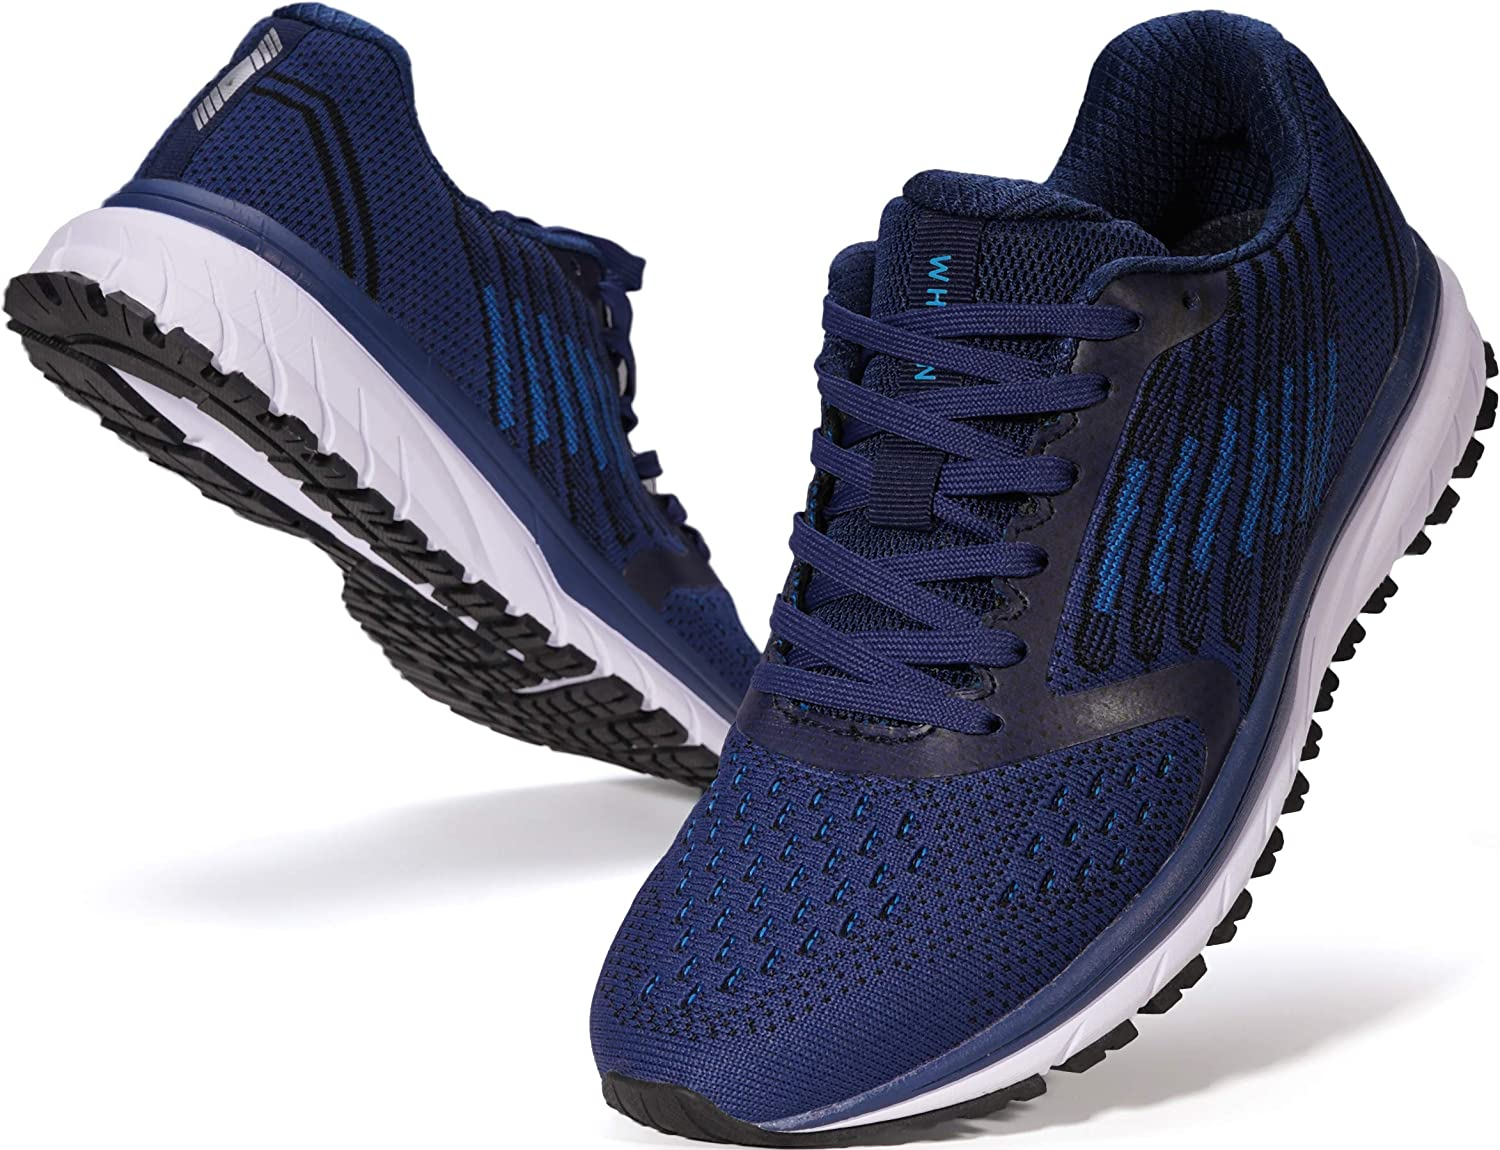 JOOMRA Men's Supportive Running Shoes Cushioned Lightweight Athletic Sneakers